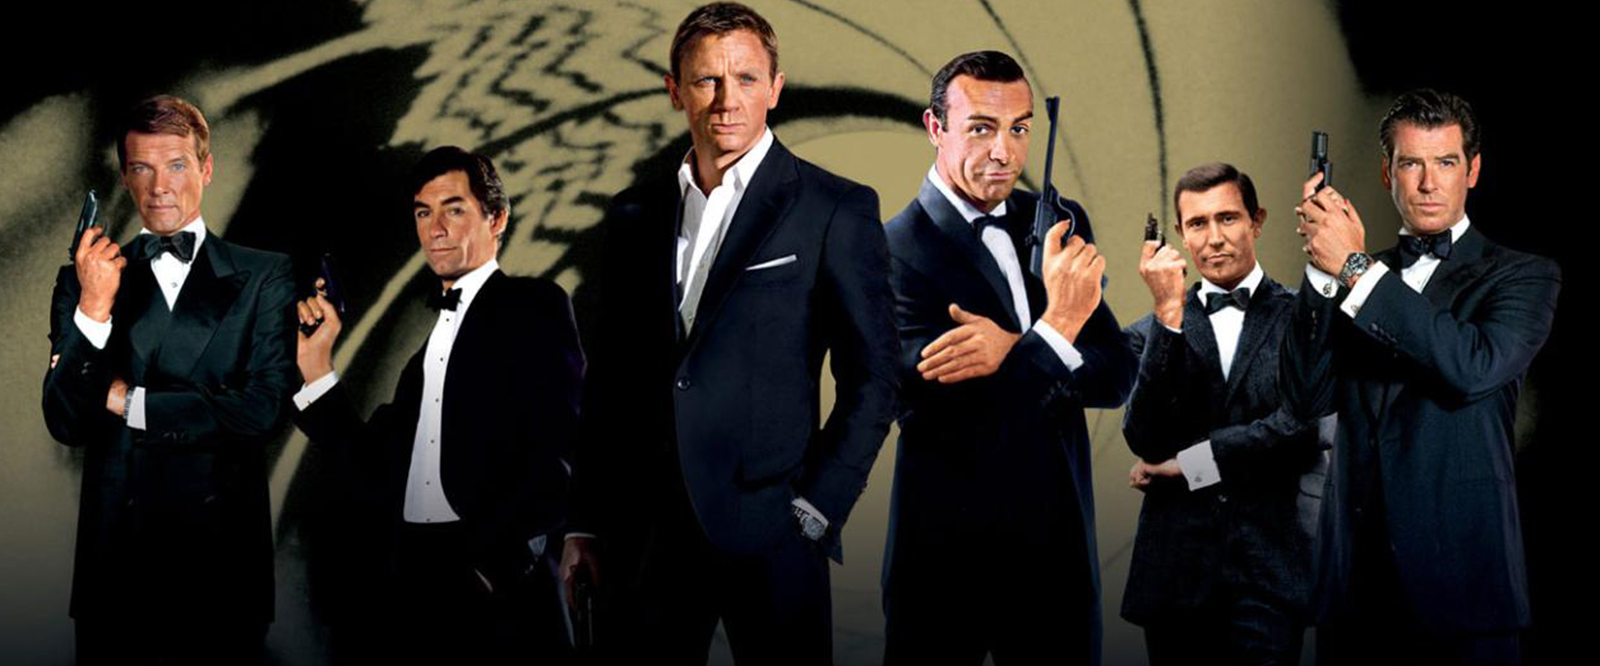 And So It Begins James Bond Franchise Breakdown - 15 amazing film locations from the james bond 007 franchise